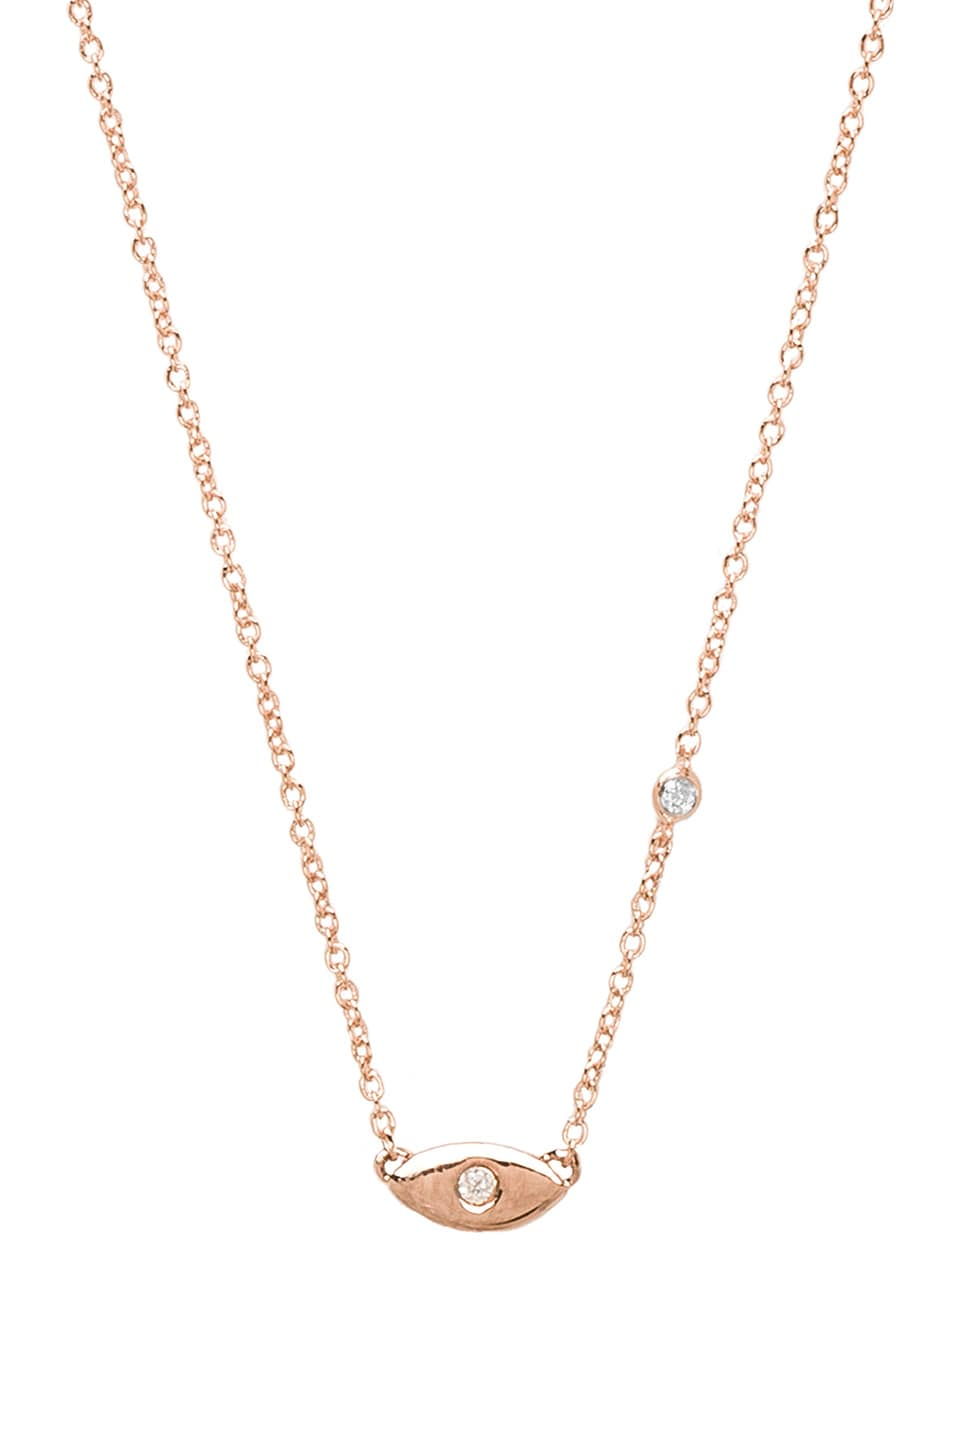 Shy by Sydney Evan Evil Eye Necklace in Rosegold